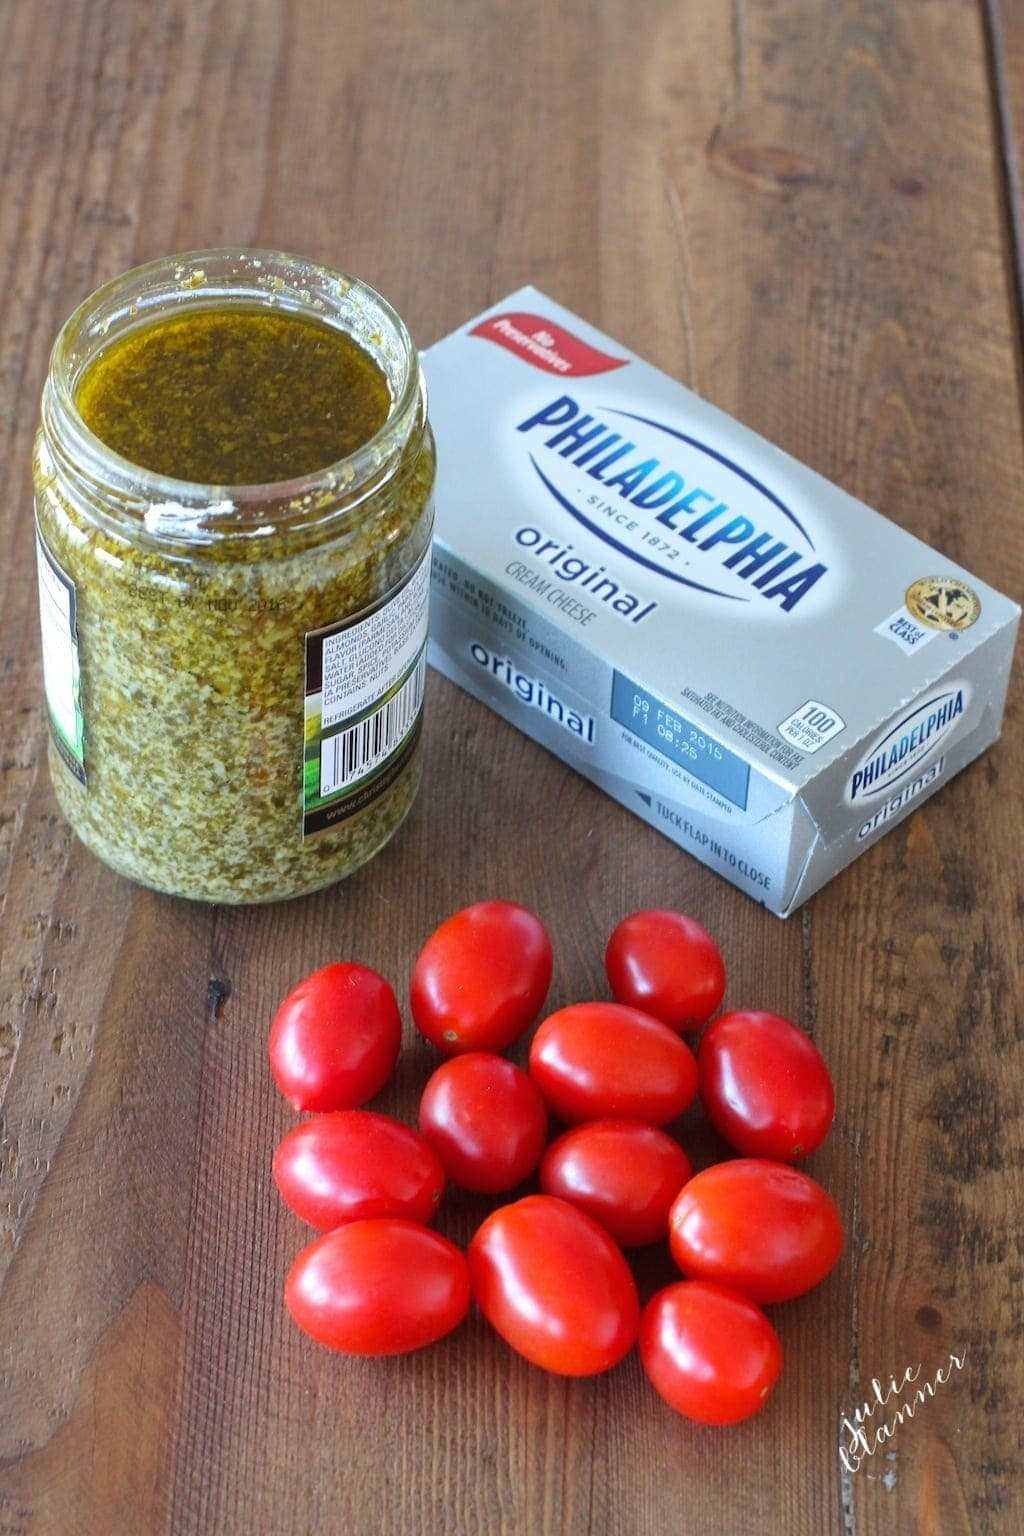 The three ingredients to make the Pesto Cheese Dip